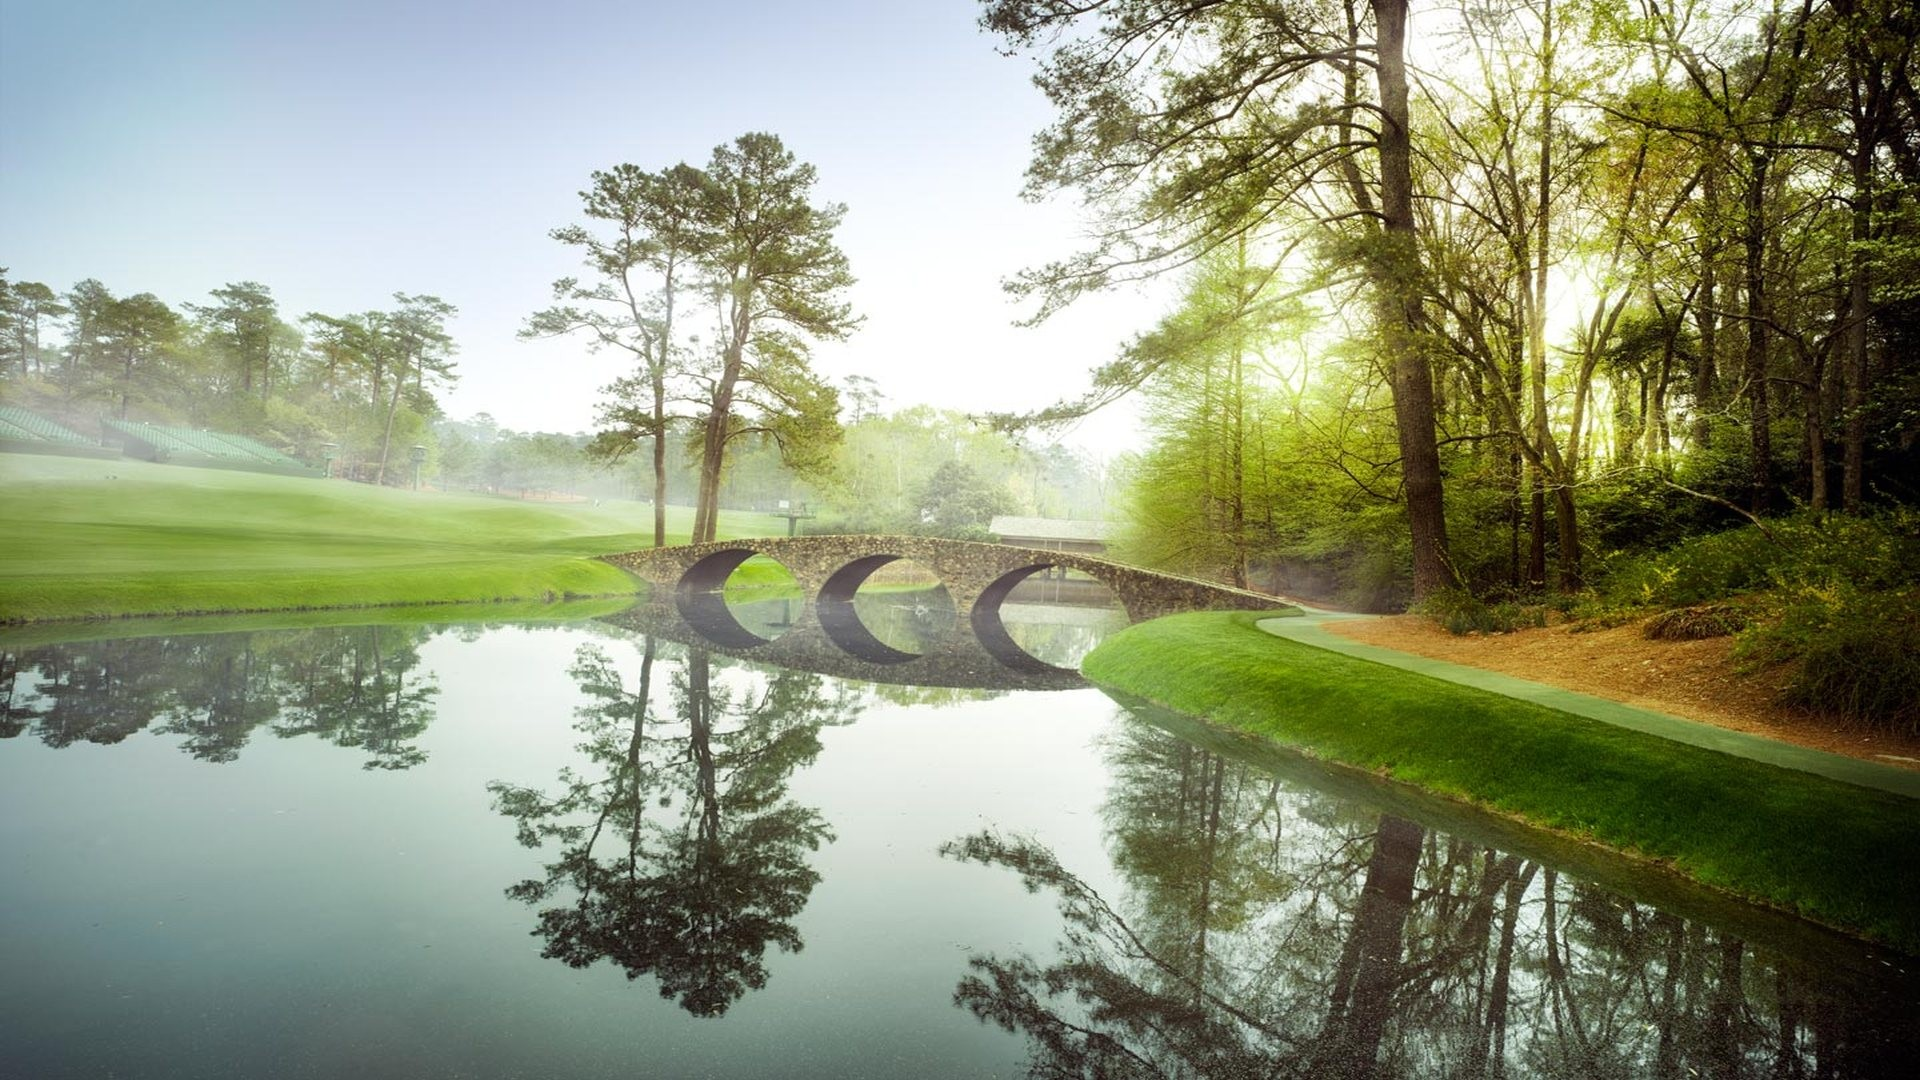 1920x1080 Wallpapers Hd Backgrounds Images Pics Photos: Augusta National Golf Club Wallpaper (63+ Images